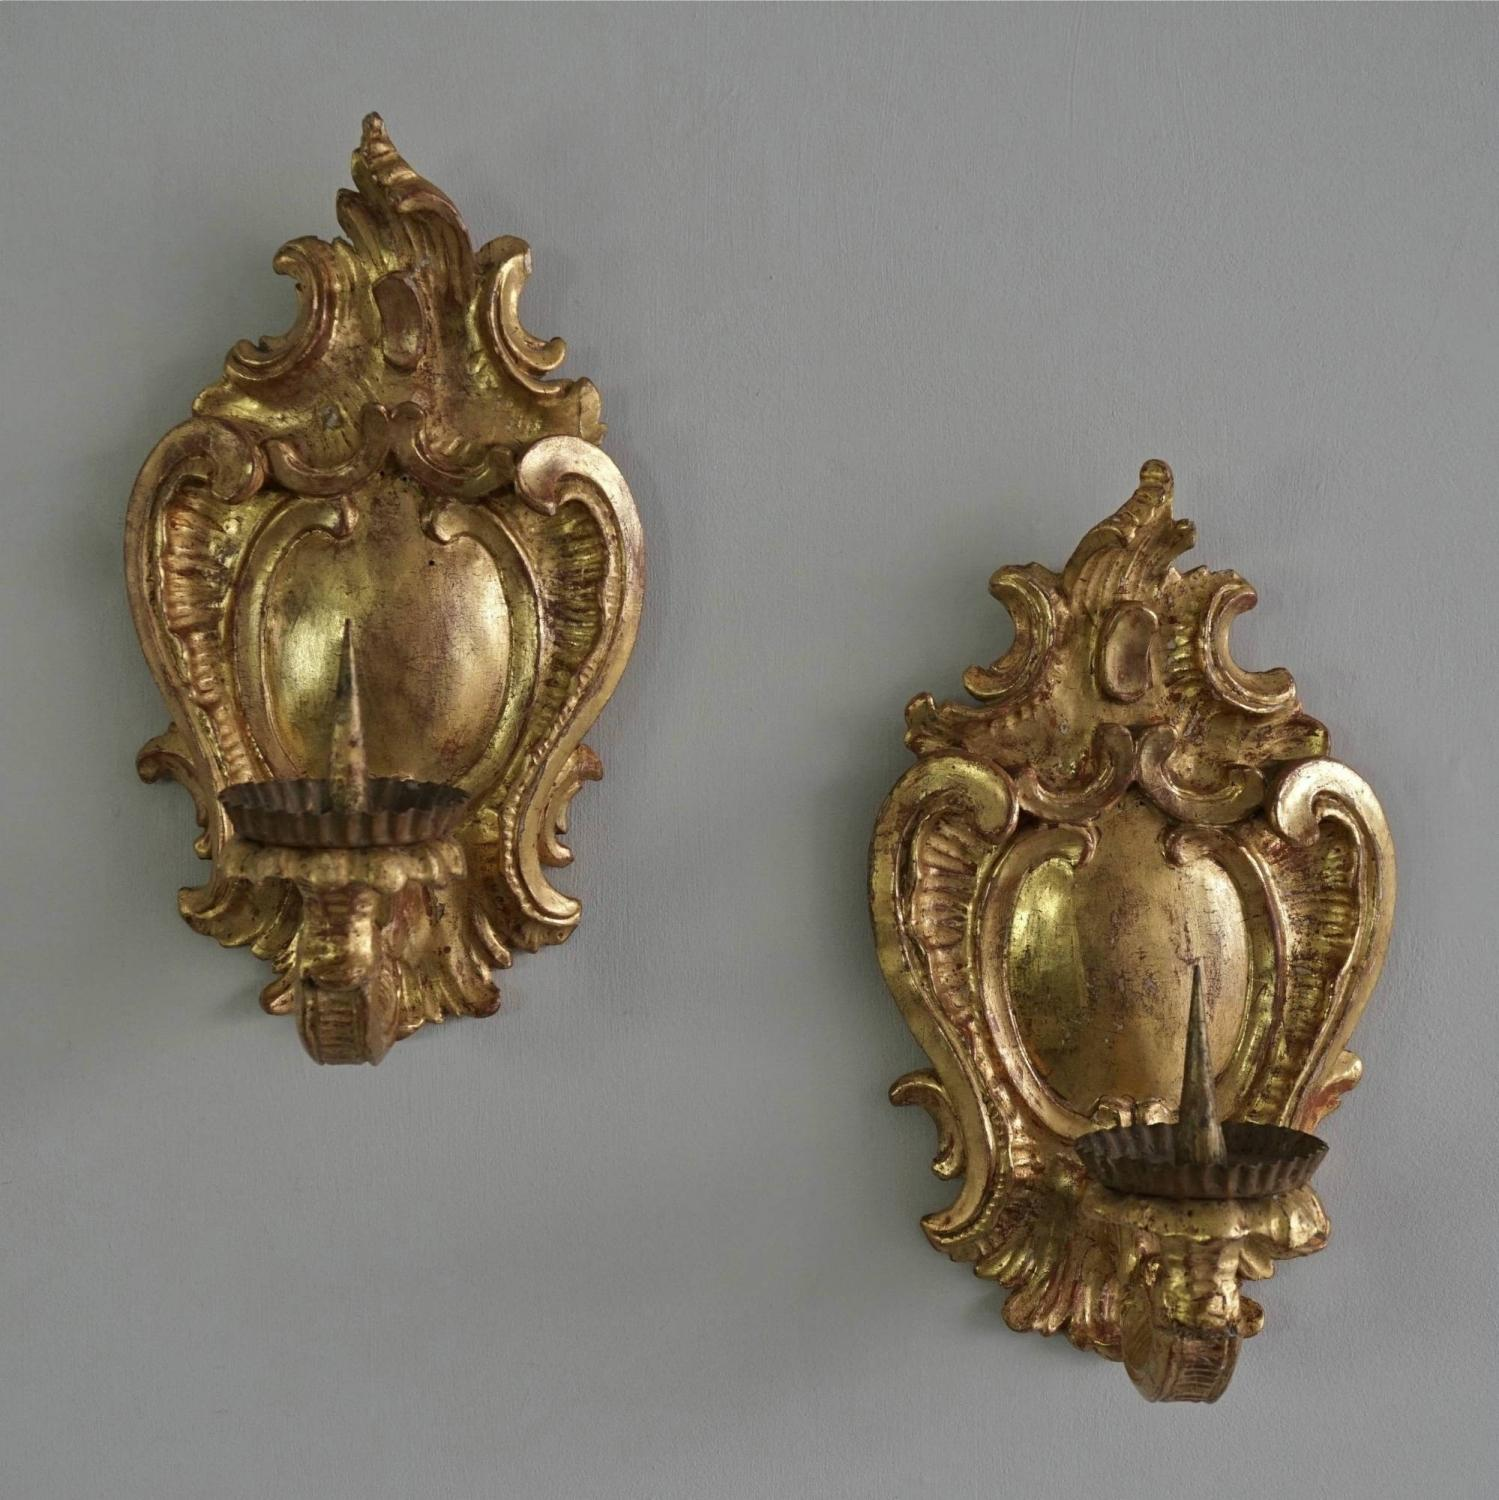 PAIR OF 18TH CENTURY BAROQUE WALL SCONCES